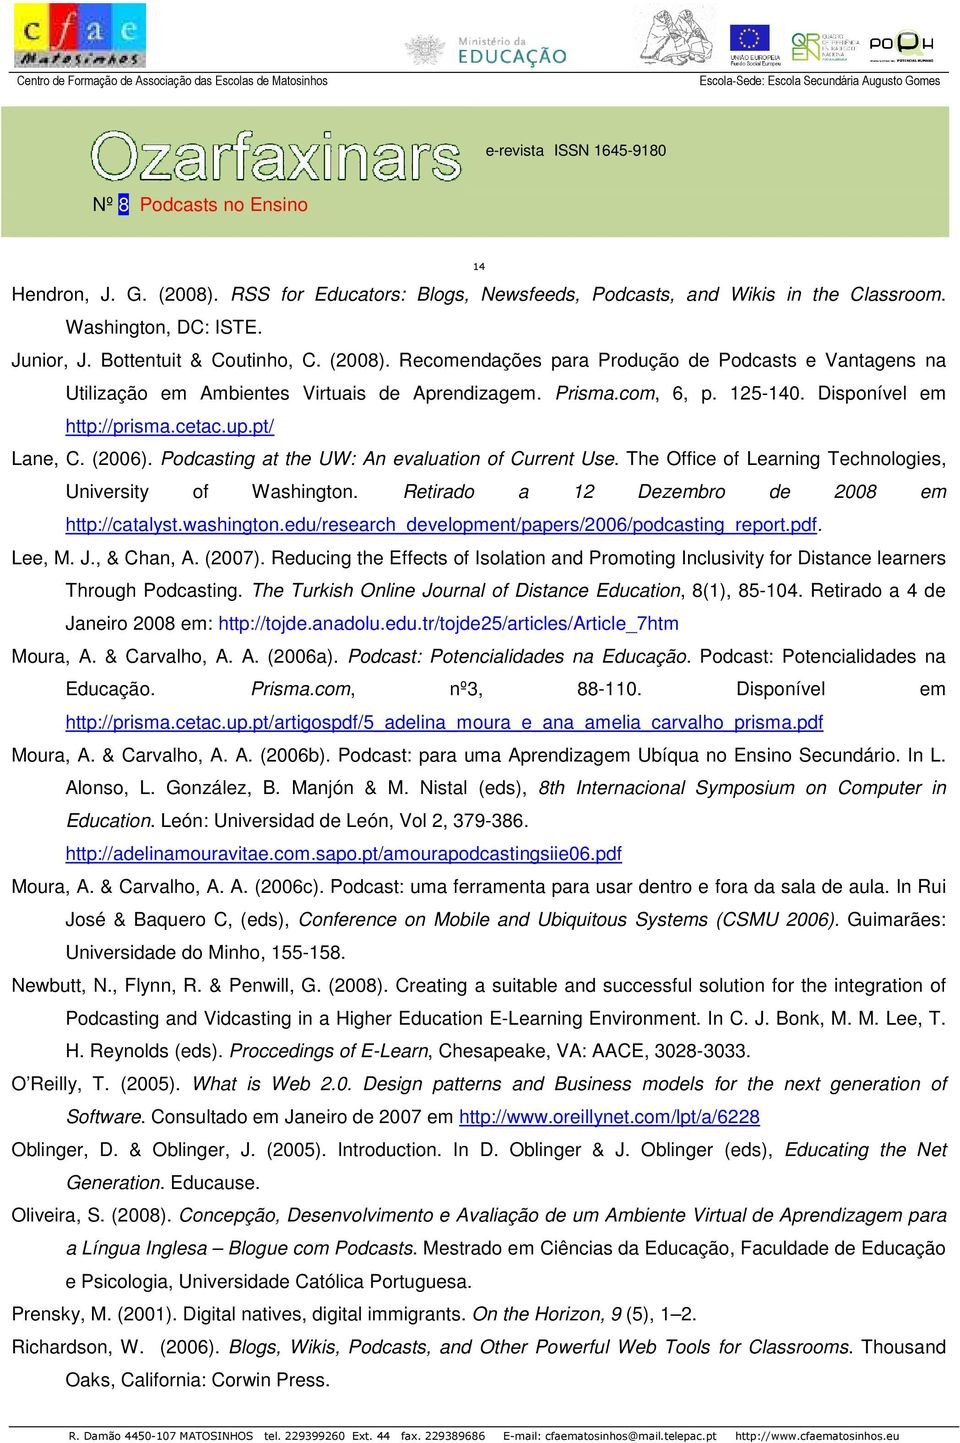 Retirado a 12 Dezembro de 2008 em http://catalyst.washington.edu/research_development/papers/2006/podcasting_report.pdf. Lee, M. J., & Chan, A. (2007).